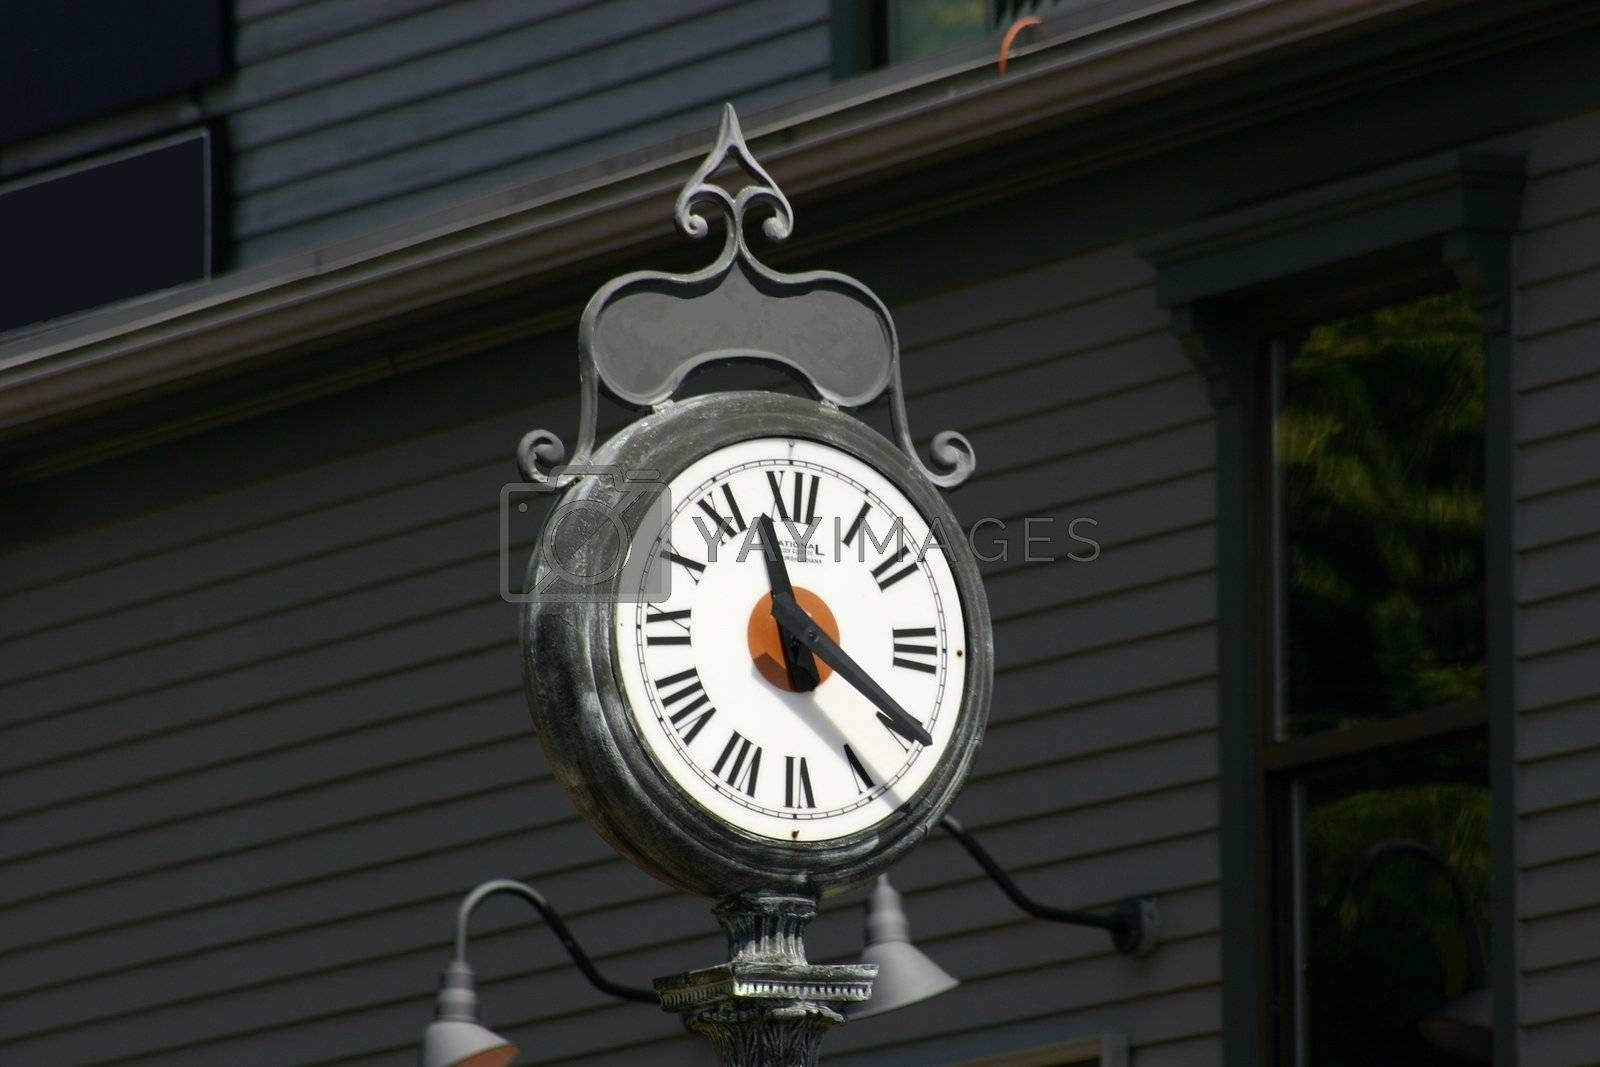 Clock found in the middle of a town square